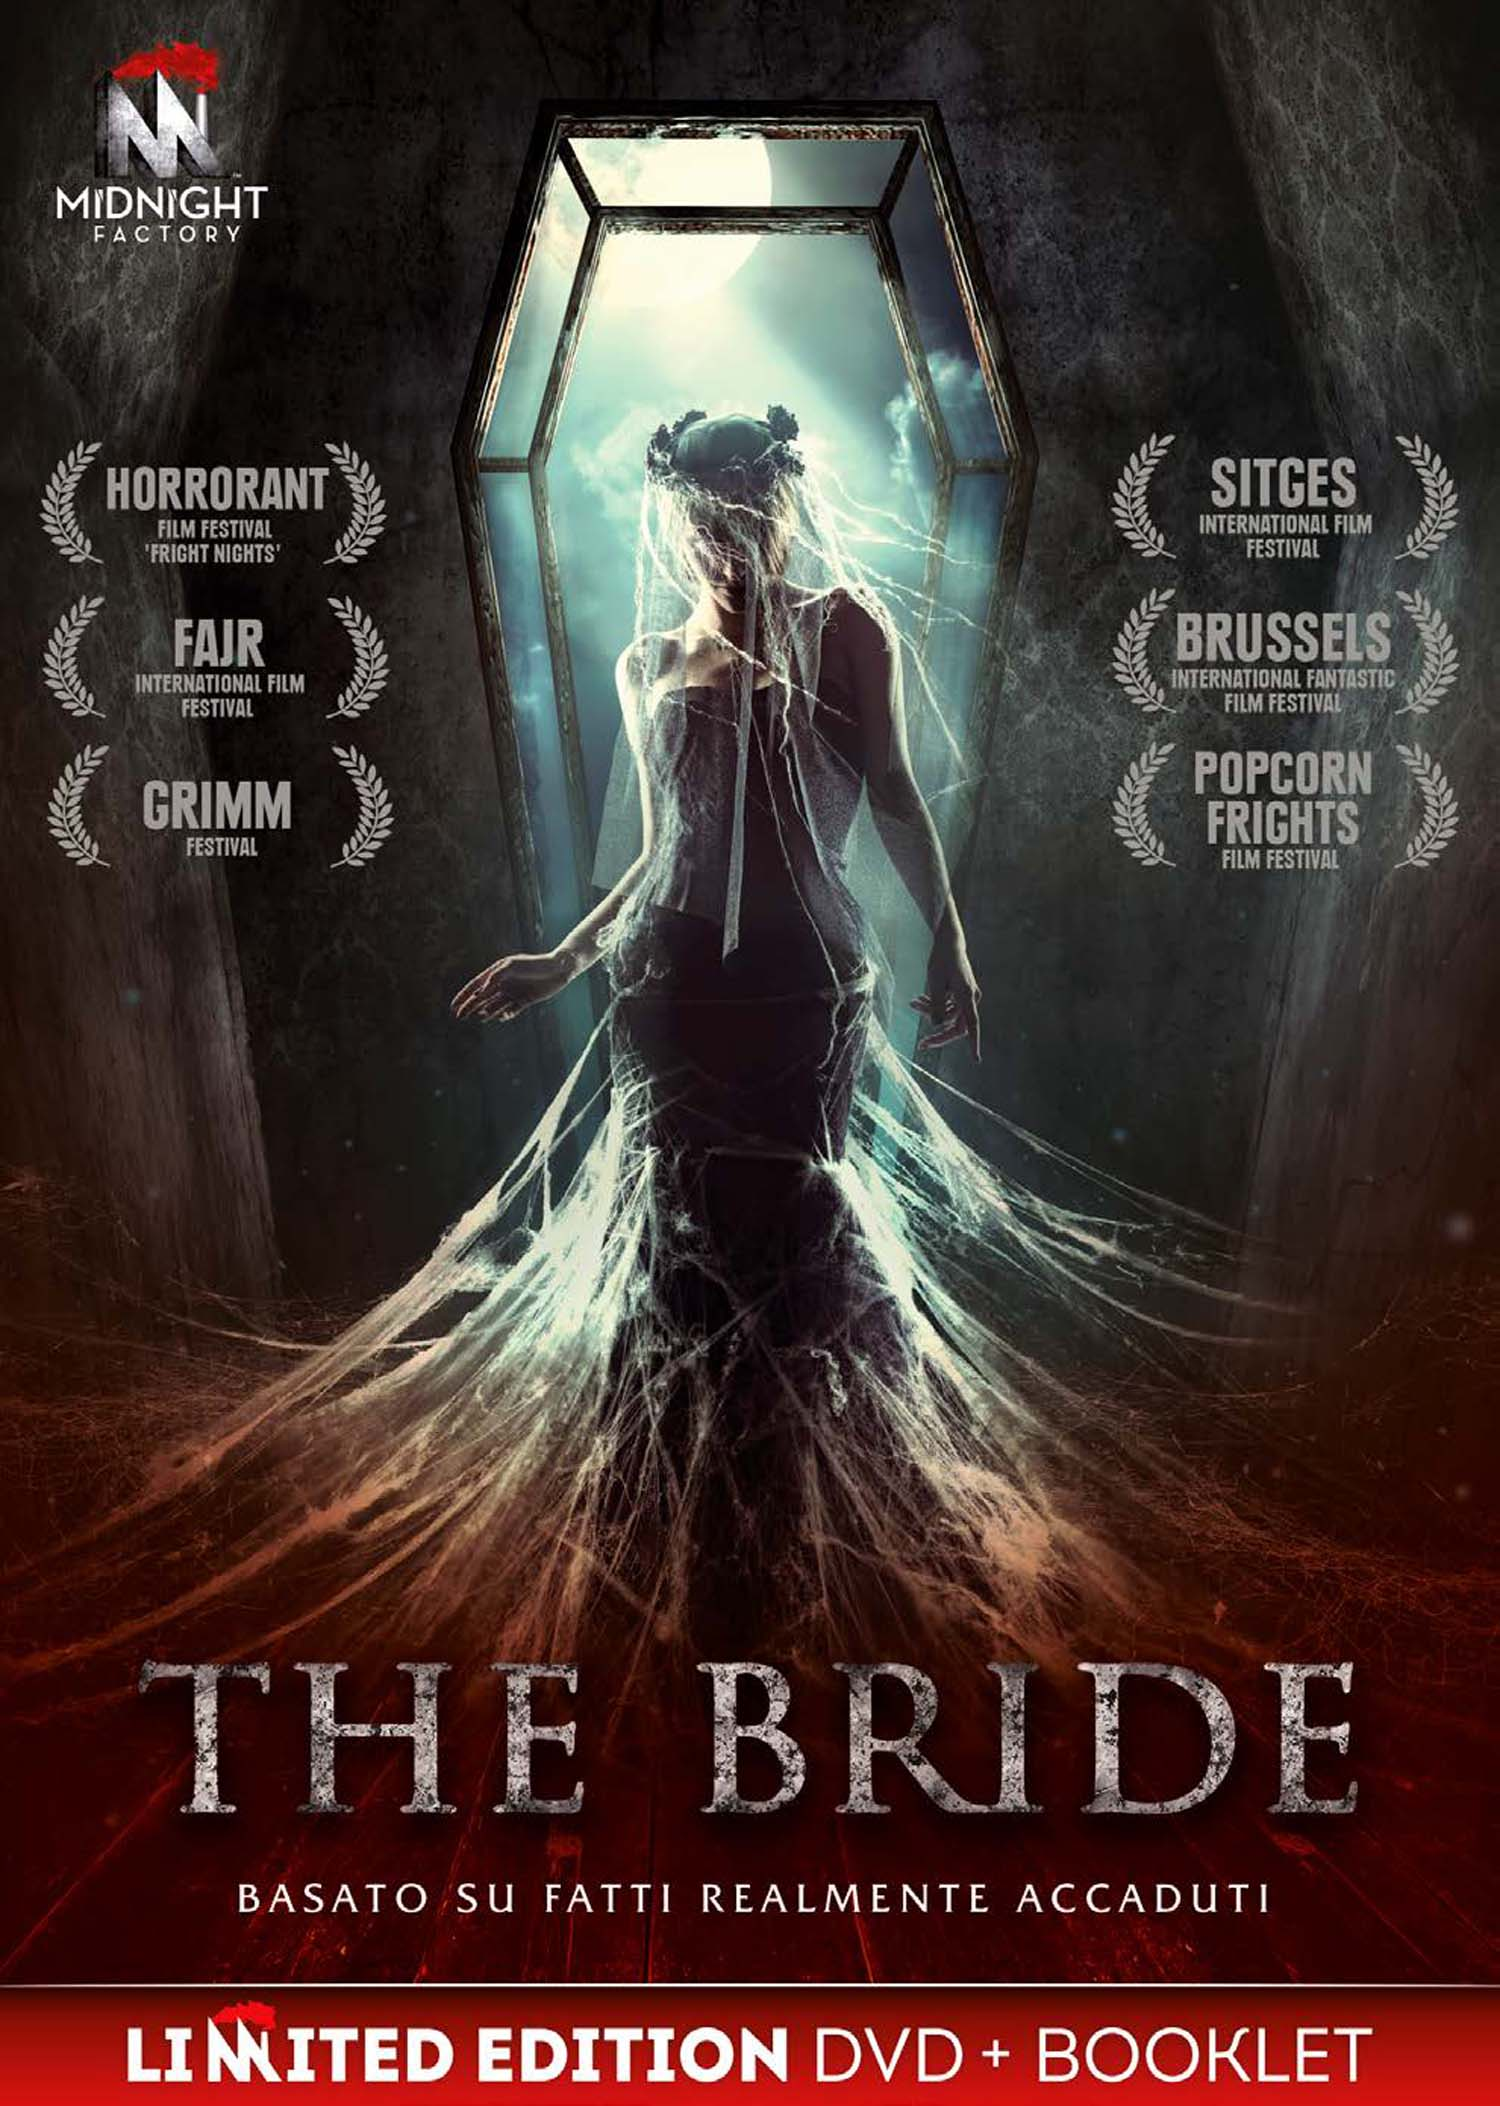 THE BRIDE (EDIZIONE LIMITATA+BOOKLET) (DVD)